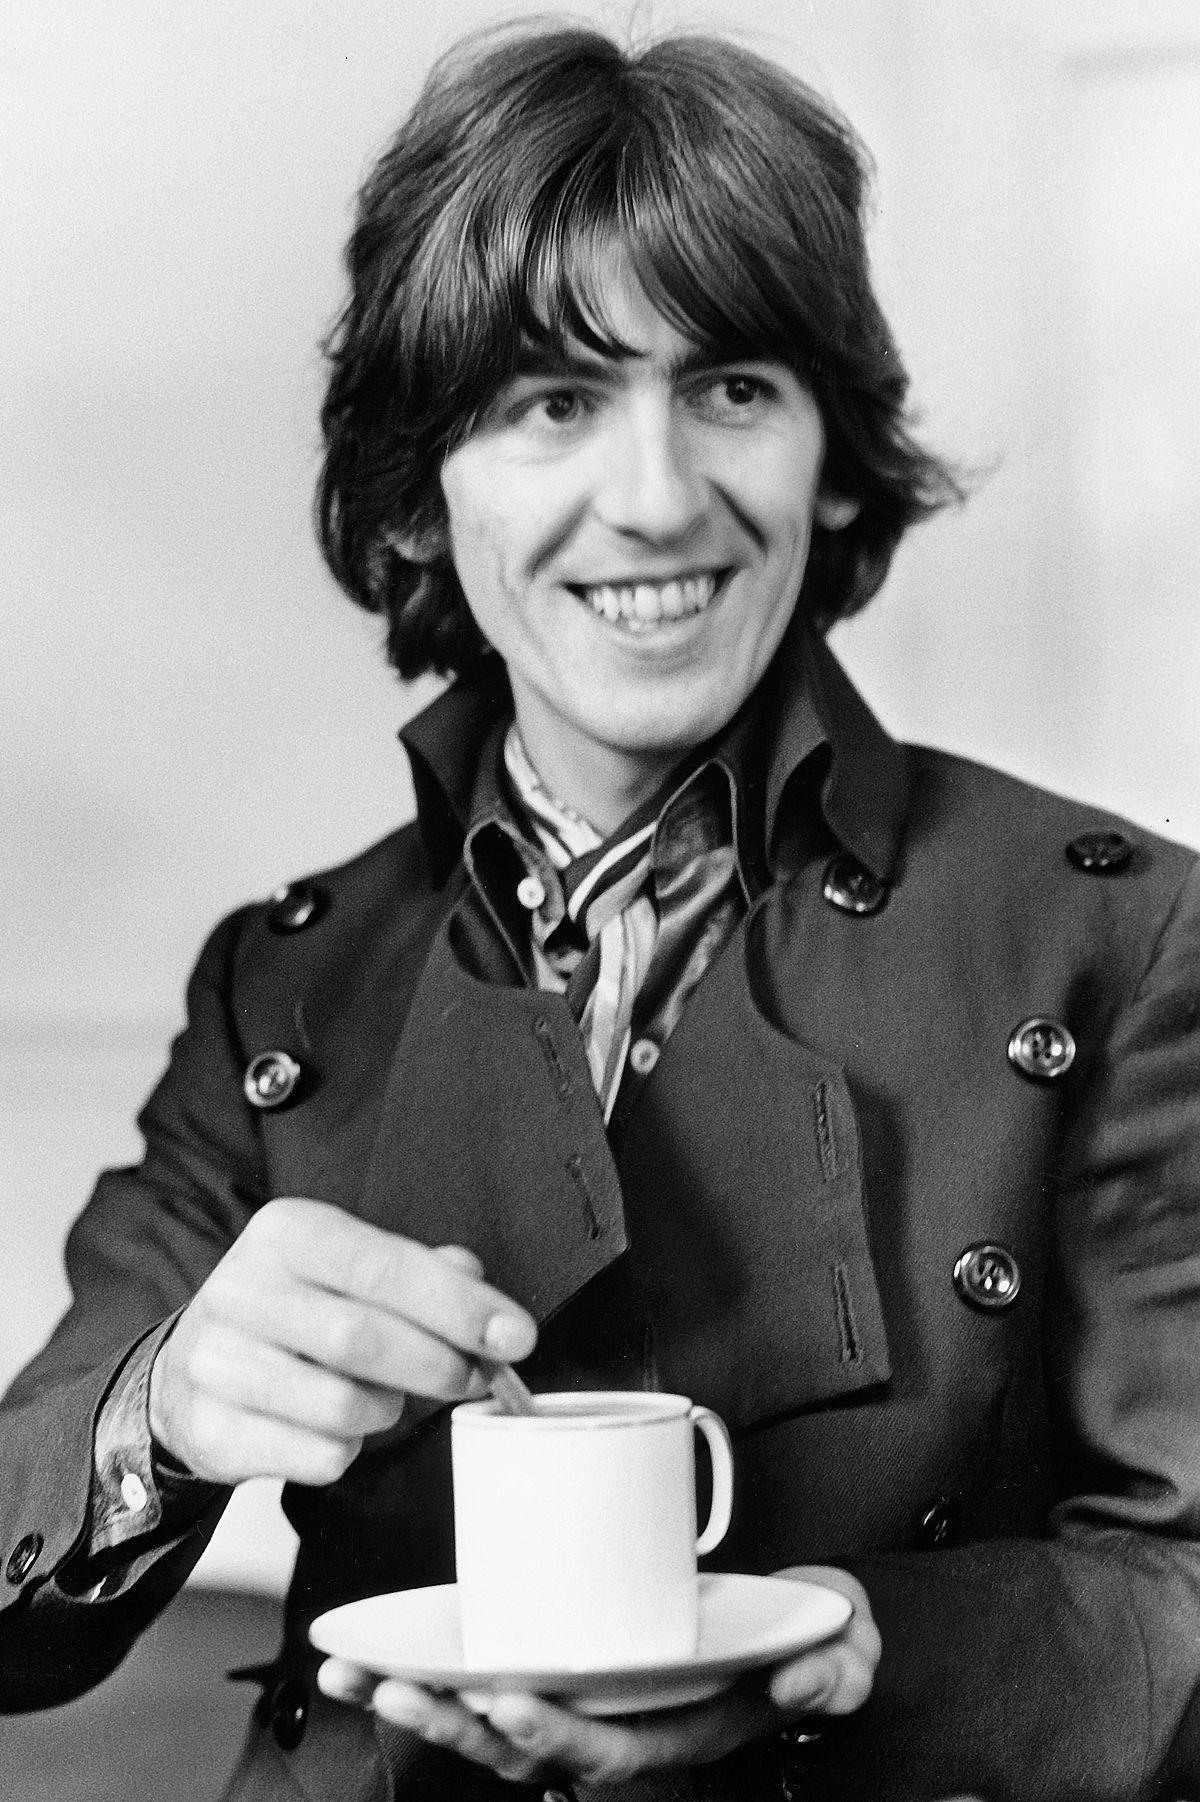 High Quality George Harrison Wallpaper | Full HD Pictures